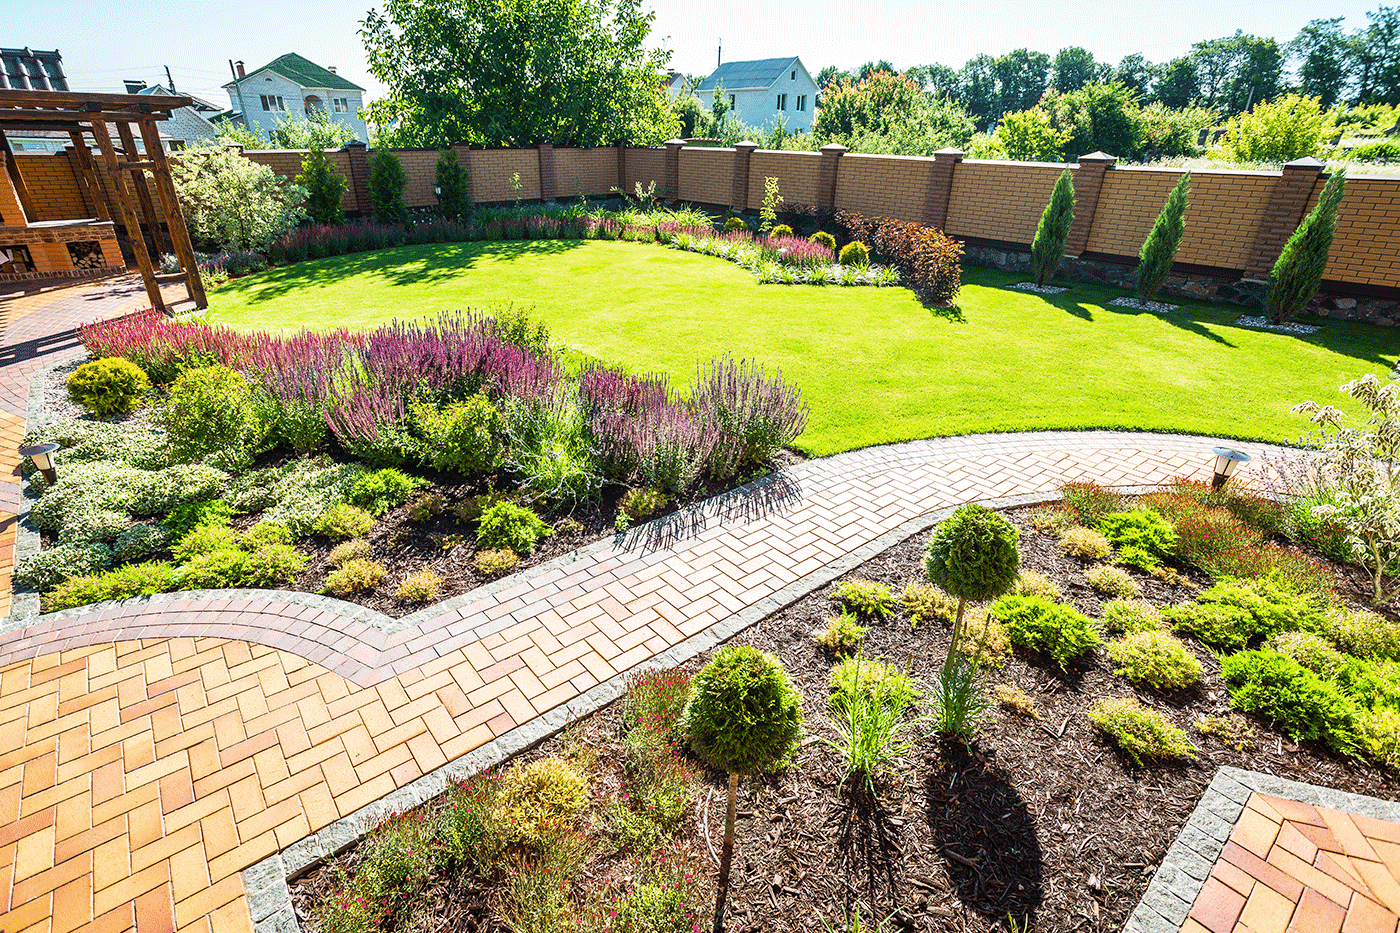 Spring Landscaping Tips 10 tips to improve your landscaping in the spring | better homes